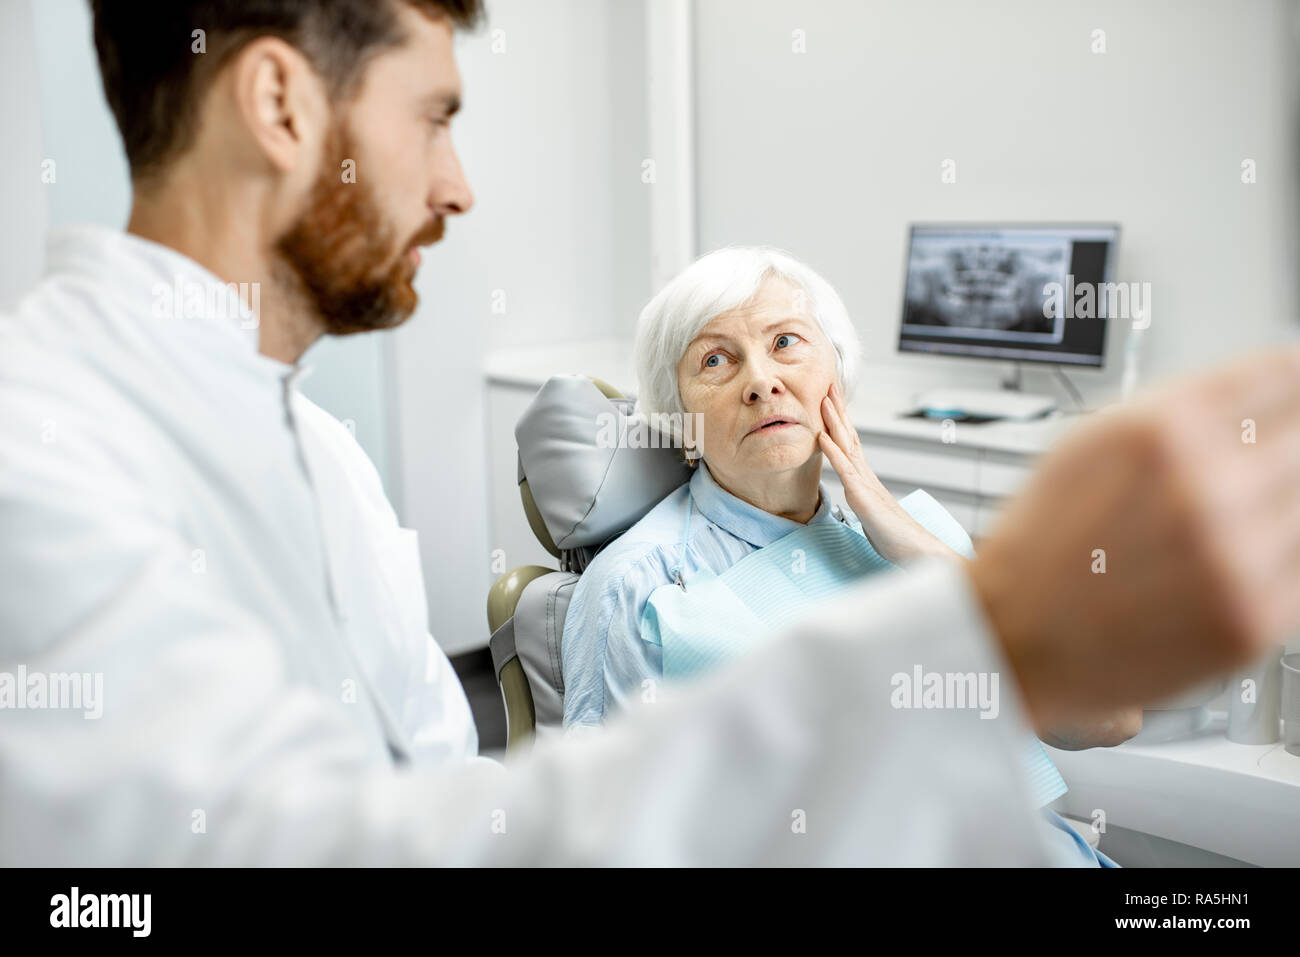 Worried elder woman during the consultation with handsome dentist showing panoramic x-ray in the dental office Stock Photo